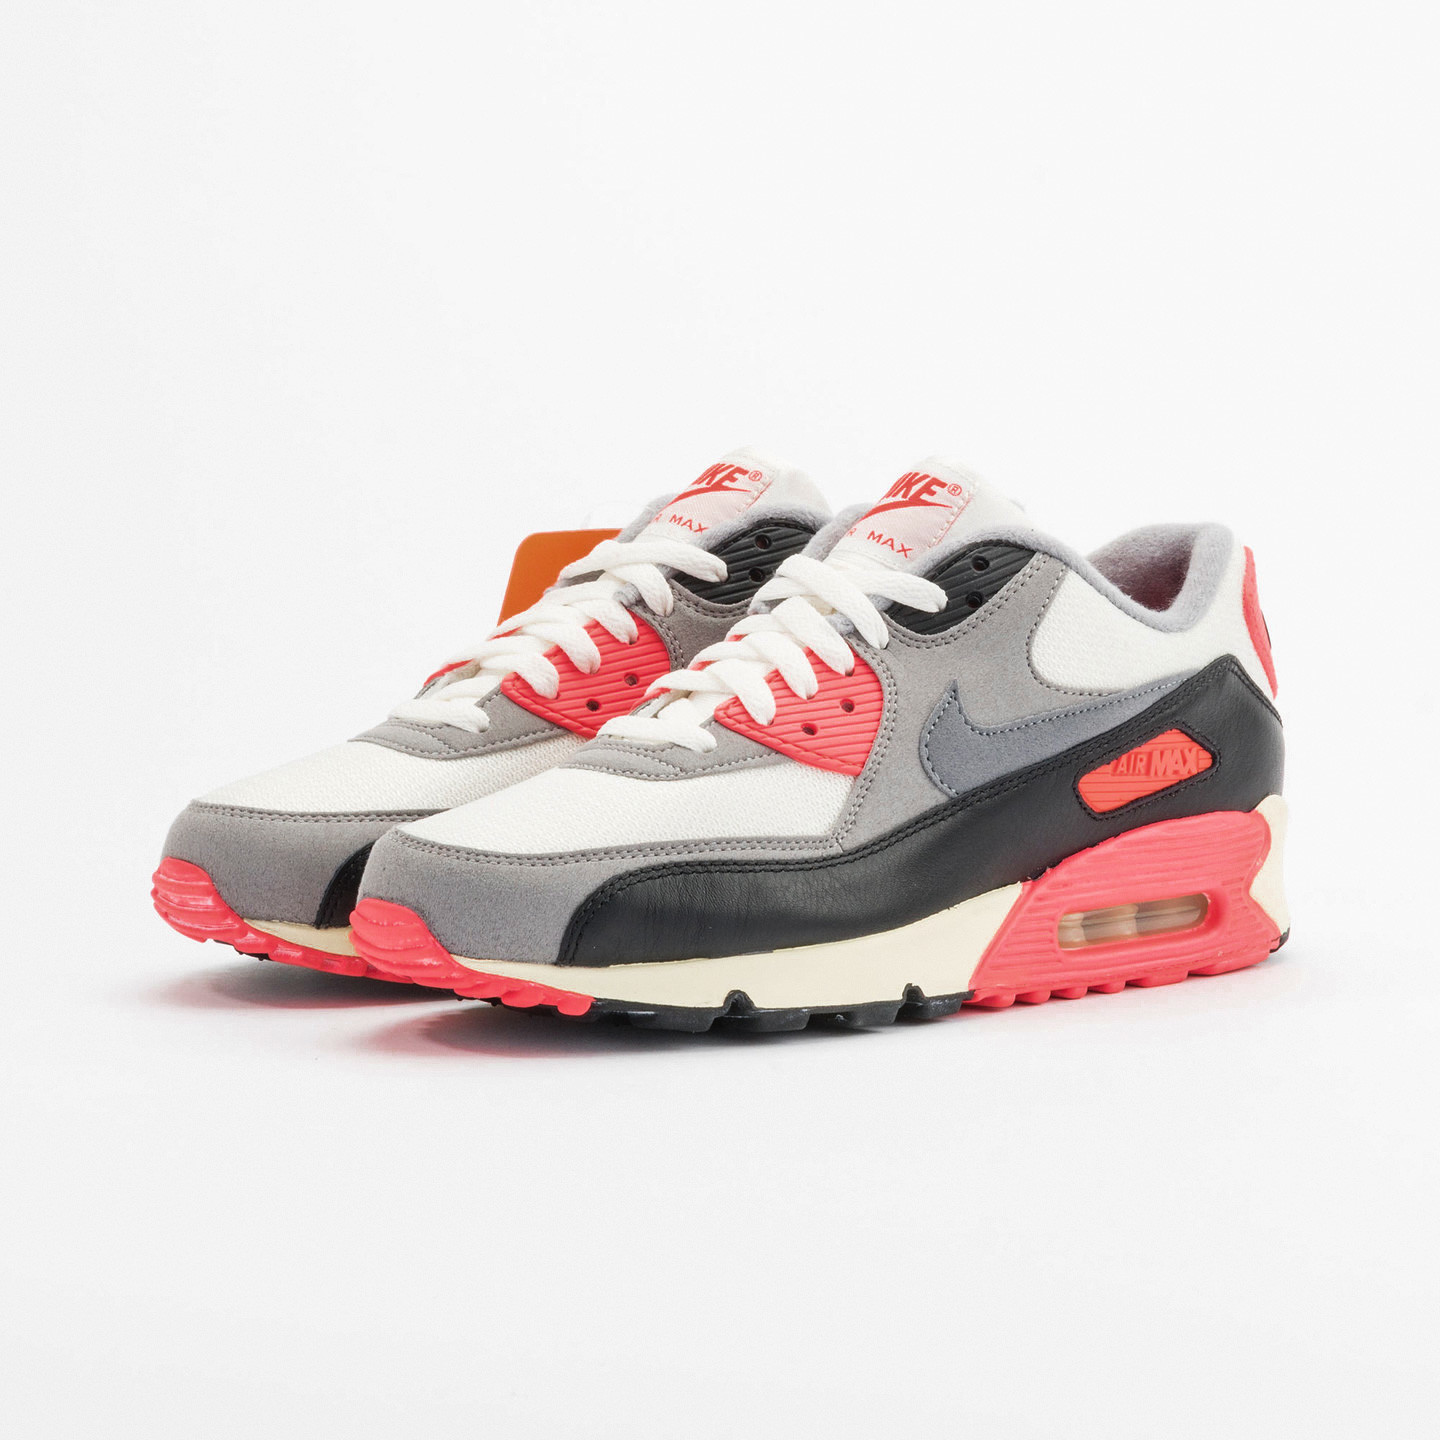 Nike Air Max 90 OG Vintage Infrared Sail /Cool Grey / Mdm Grey / Infrared 543361-161